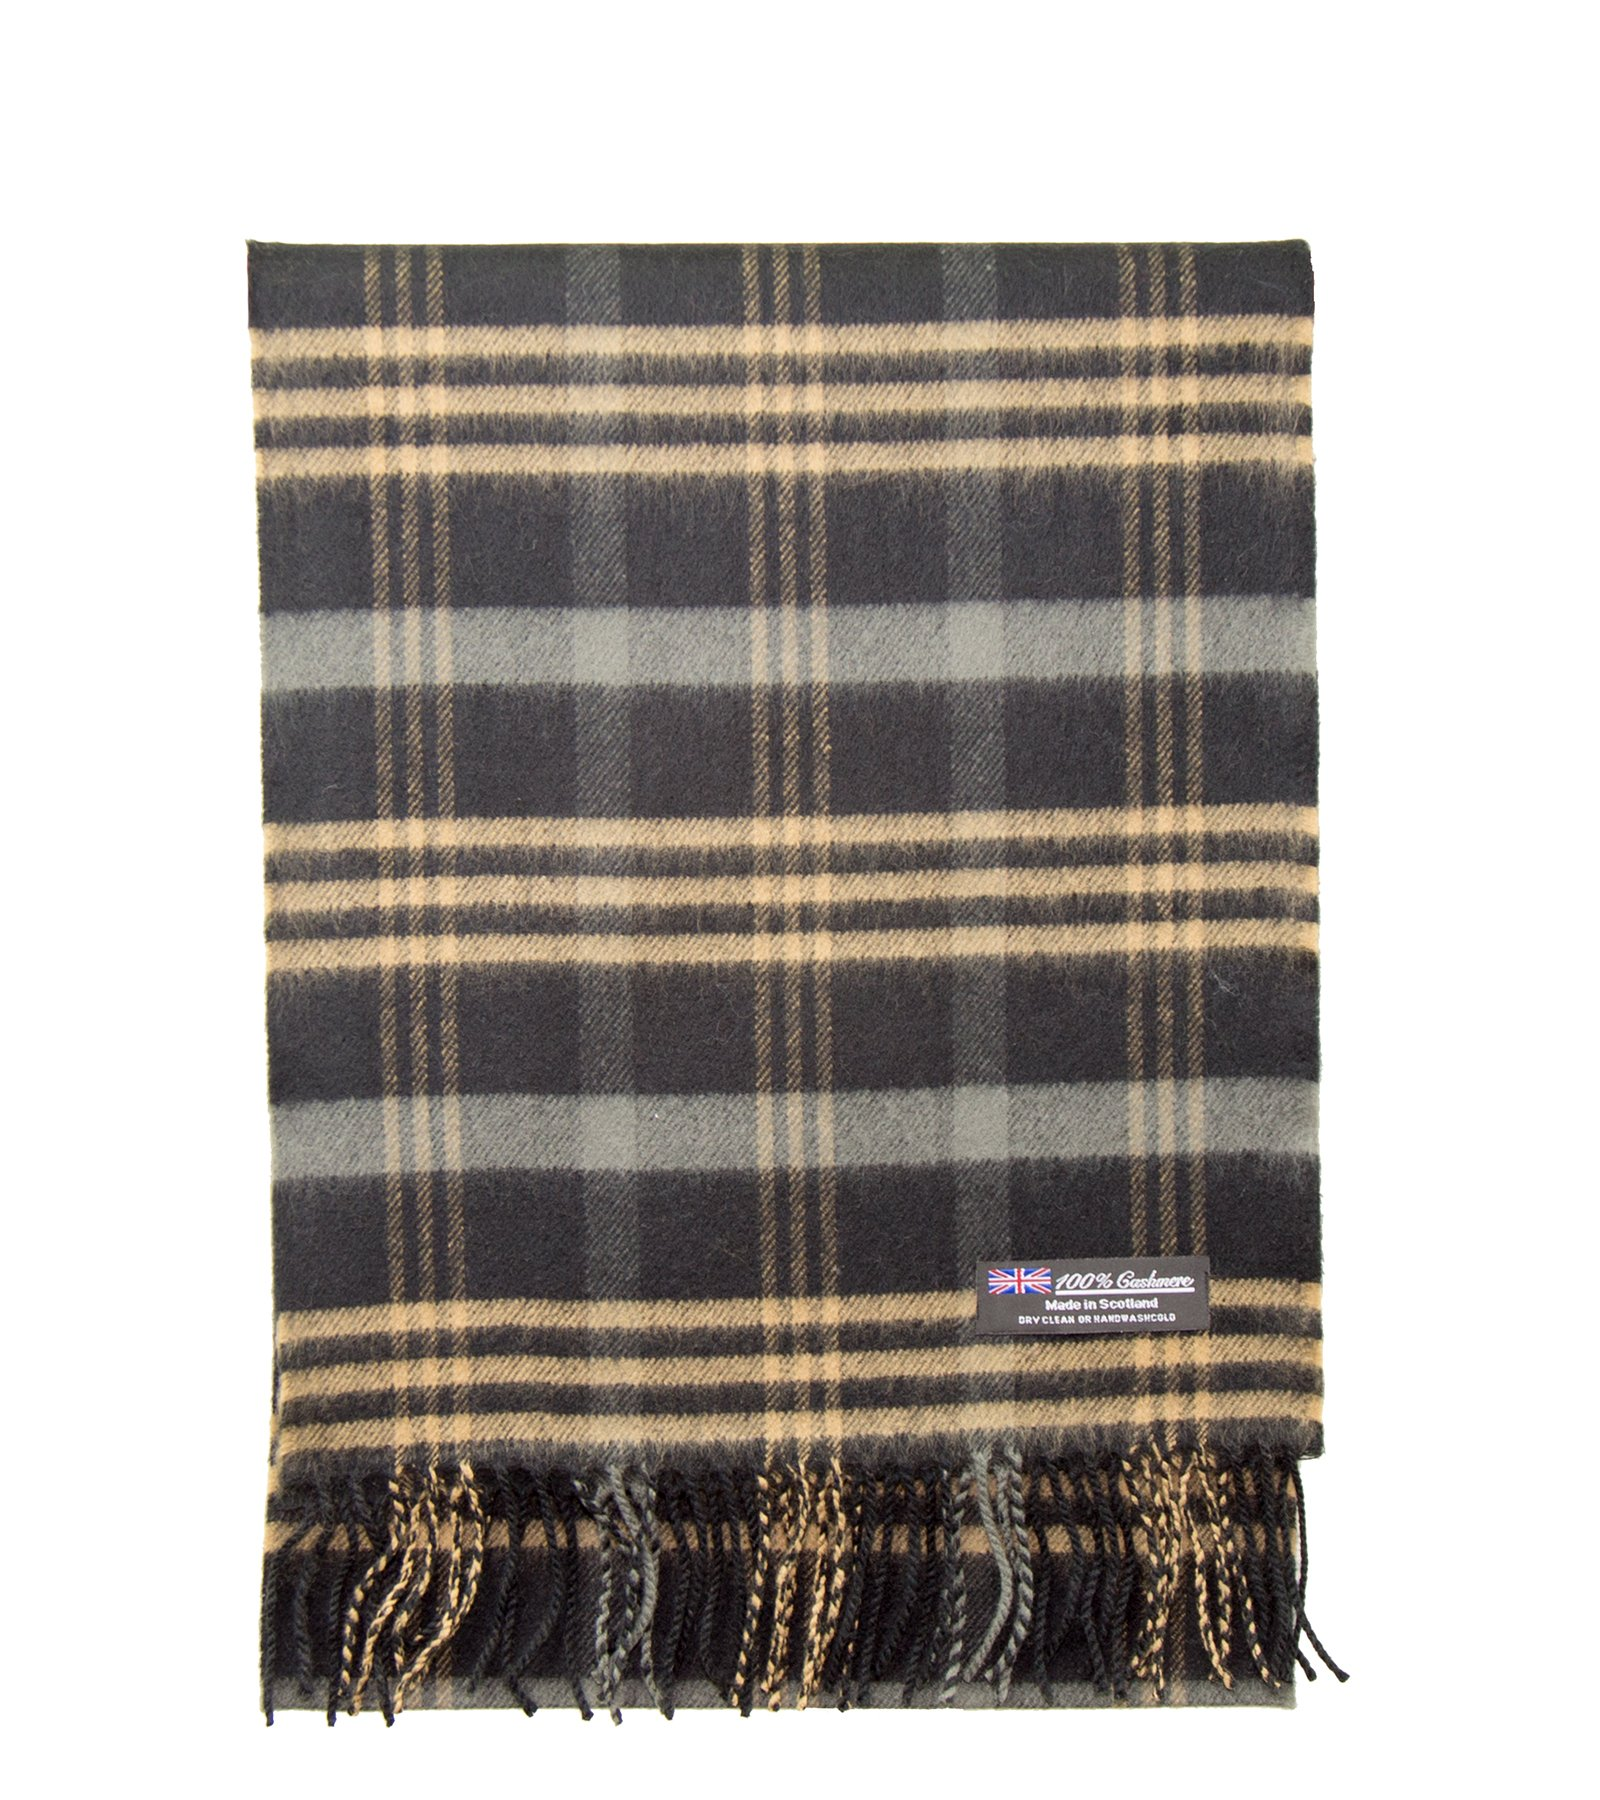 2 PLY 100% Cashmere Winter Scarf Elegant Collection Made in Scotland Warm Soft Wool Solid Plaid (Black Camel 313)